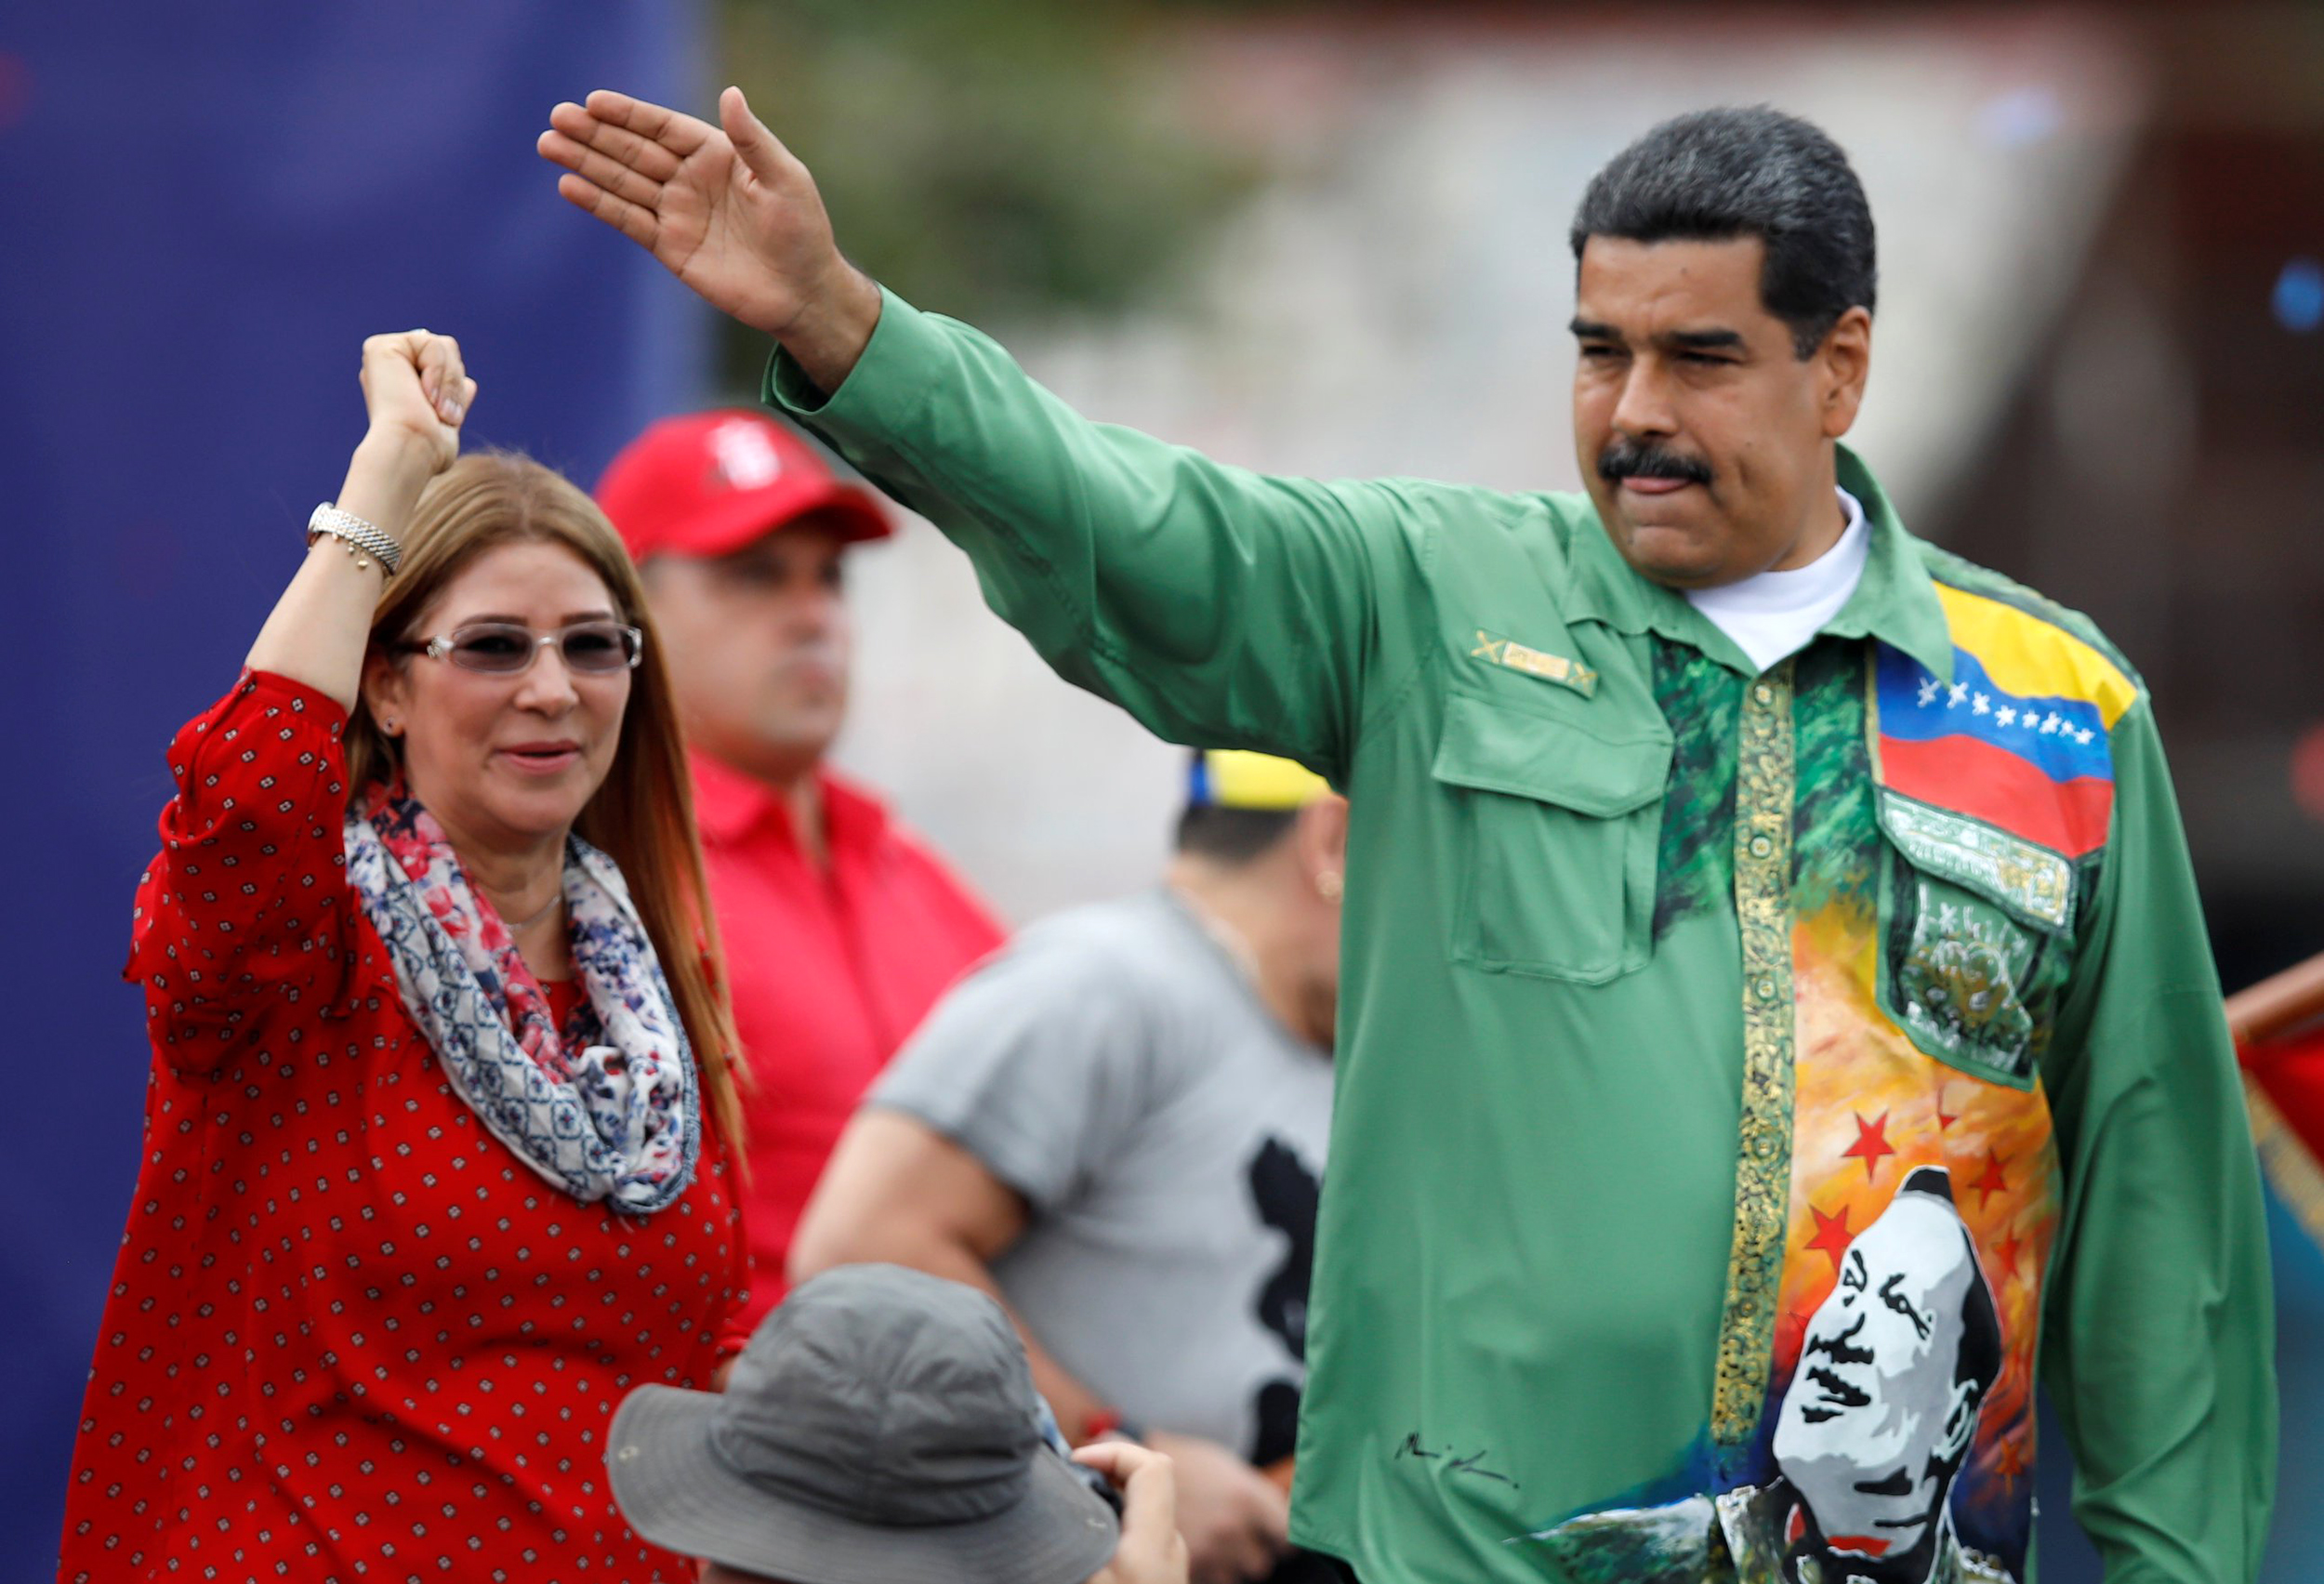 Venezuela's-Maduro-declared-winner-of-second-term-amid-severe-crisis